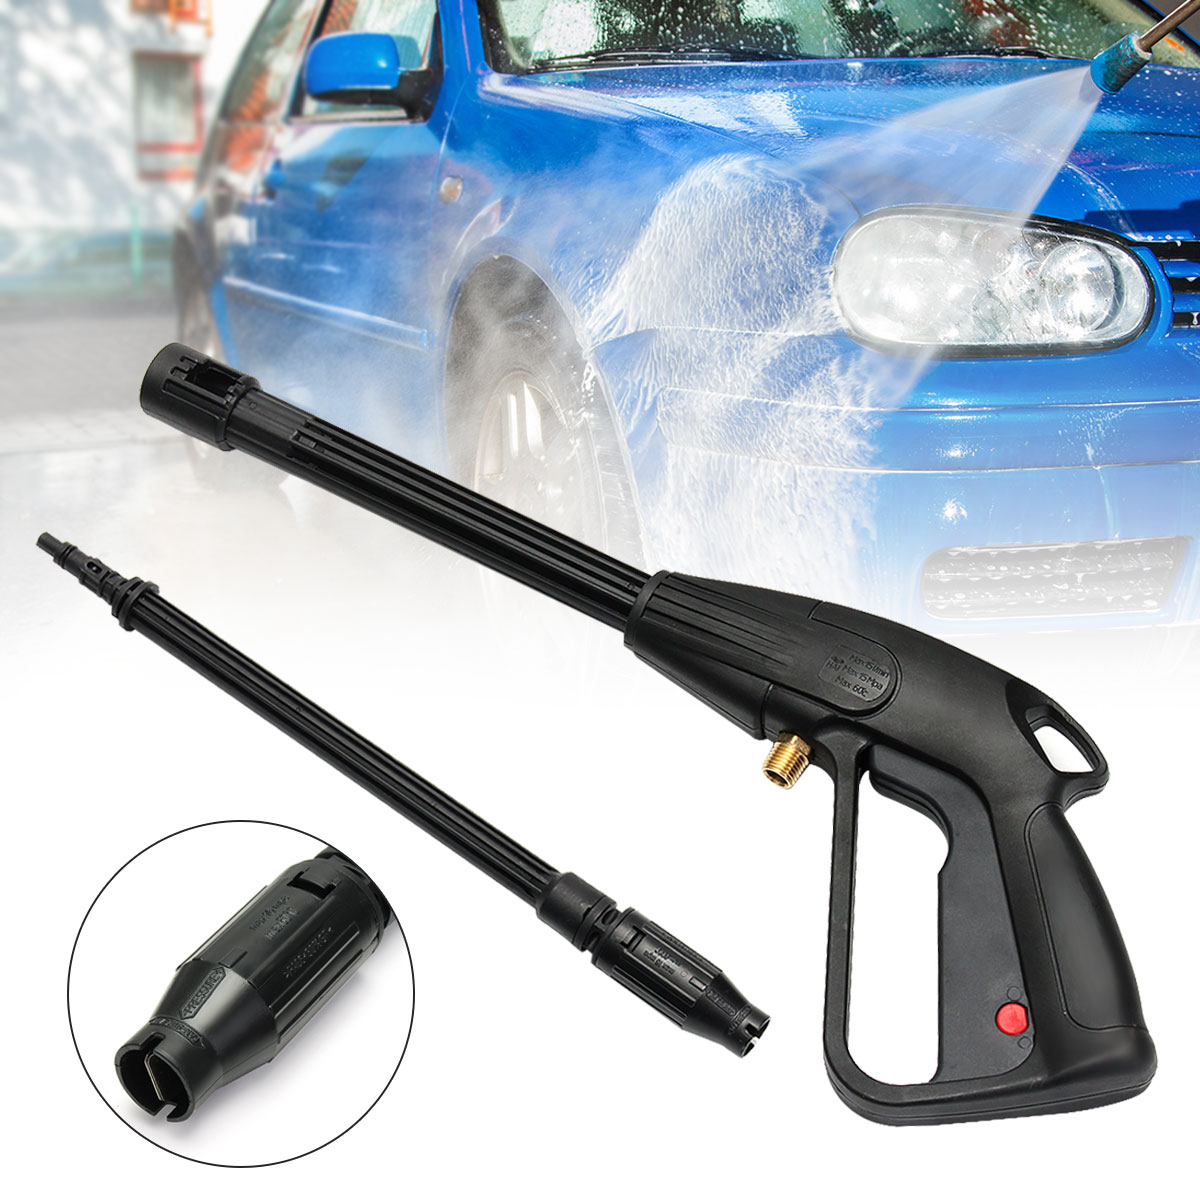 High Pressure Power Washer Spray Nozzle Adjustable Water Gun Home Washing Accessories CX001B for Car Garden Cleaning